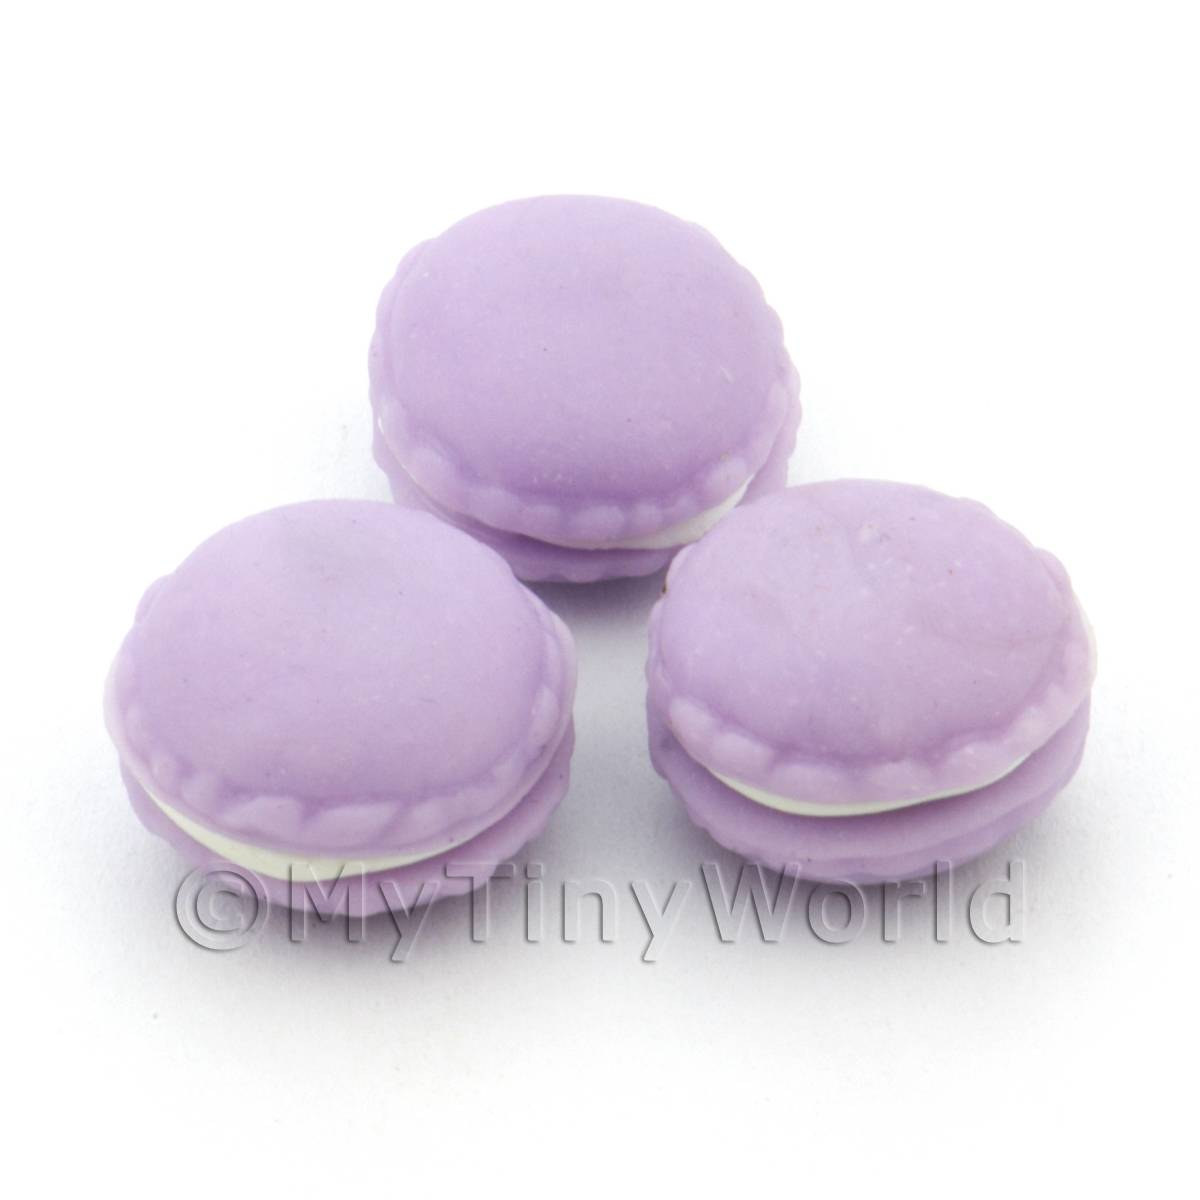 Handmade Mauve Macaroon For Jewellery And Charms